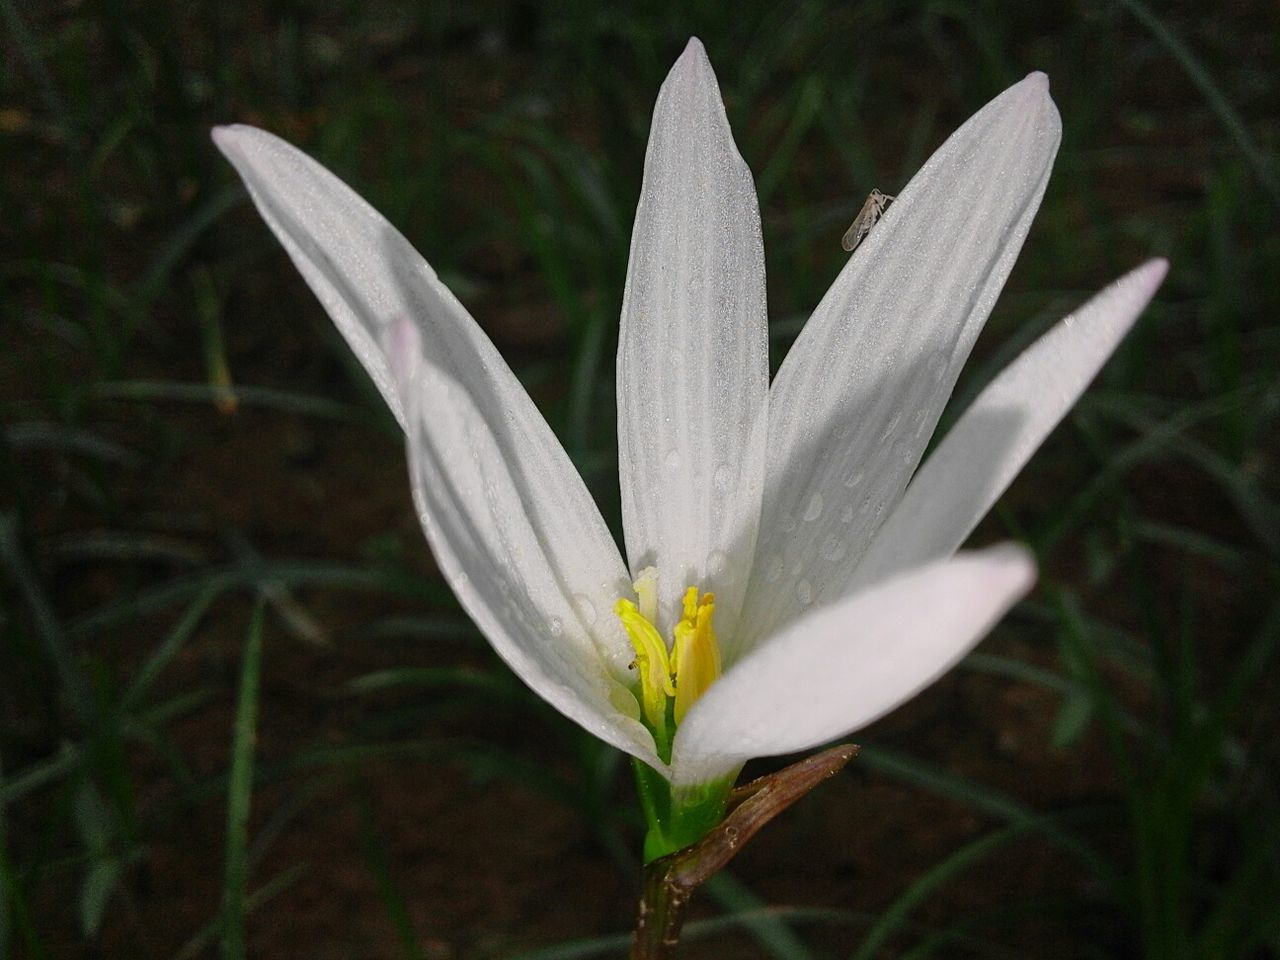 flower, petal, nature, fragility, white color, beauty in nature, flower head, freshness, growth, plant, blooming, close-up, no people, outdoors, day, water, crocus